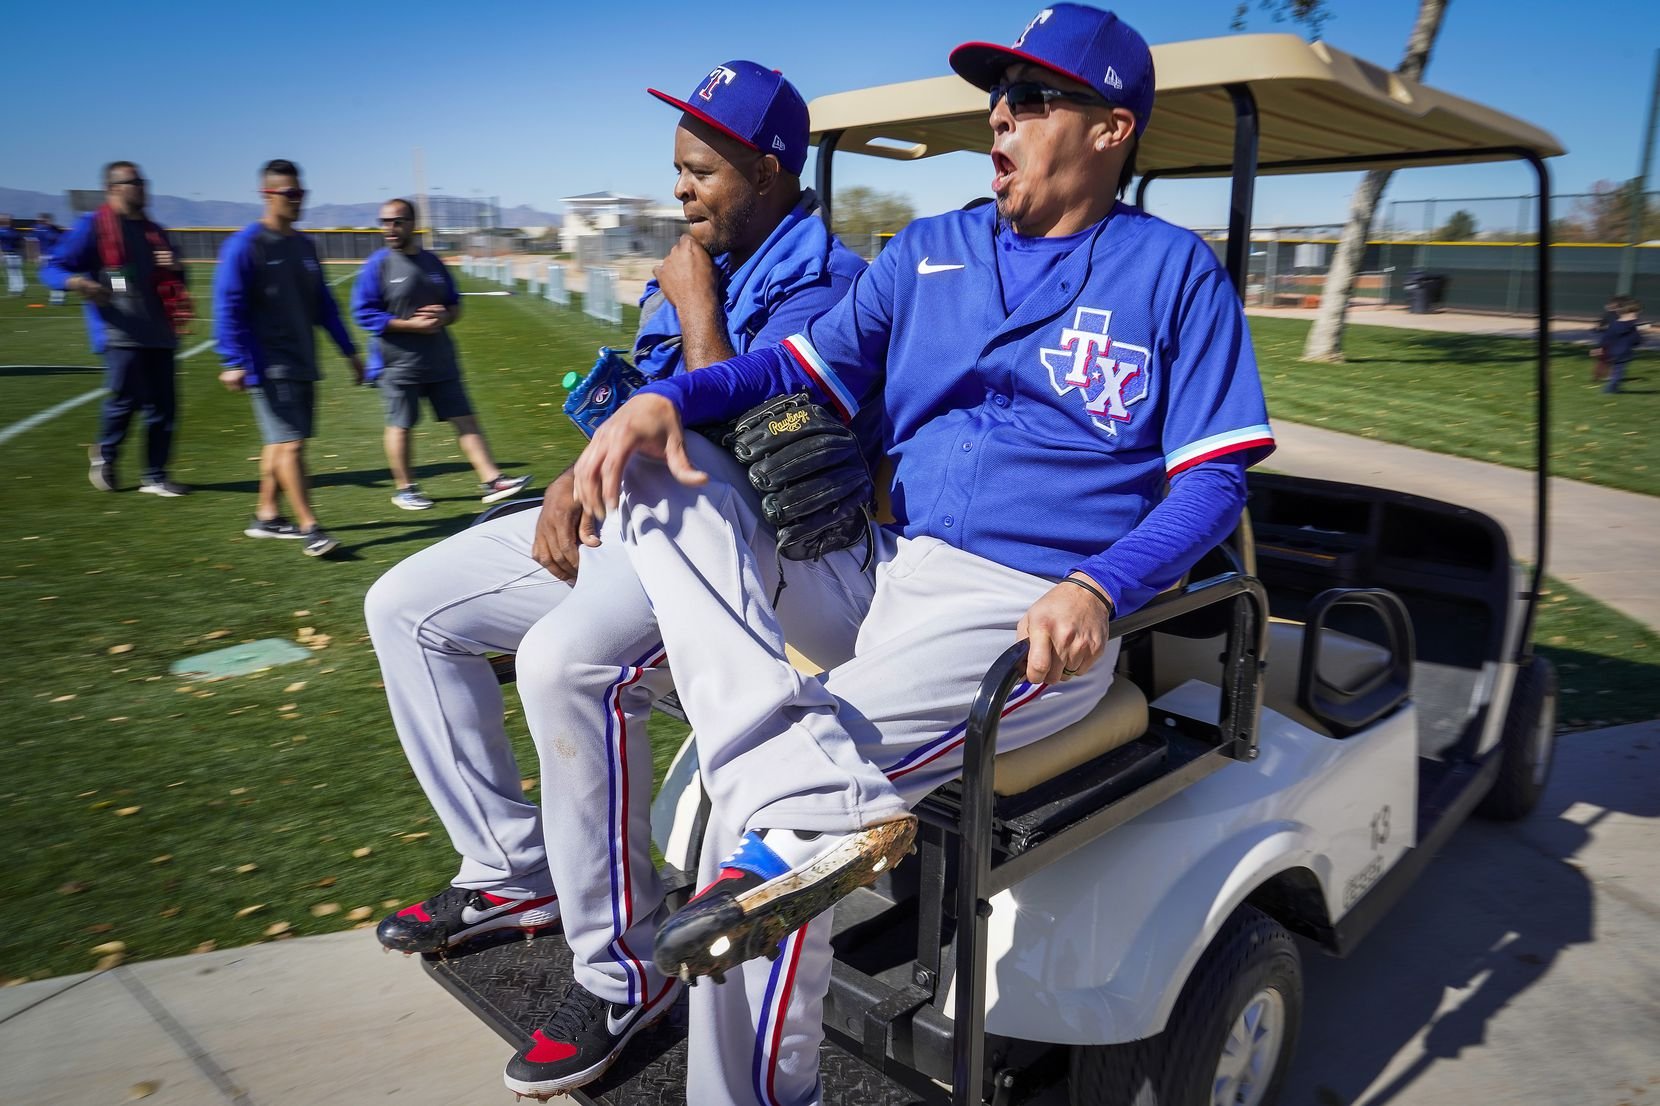 Texas Rangers pitcher Jesse Chavez (30) laughs with pitcher Edinson Volquez (36) as they ride in a golf cart following a spring training workout at the team's training facility on Thursday, Feb. 13, 2020, in Surprise, Ariz.